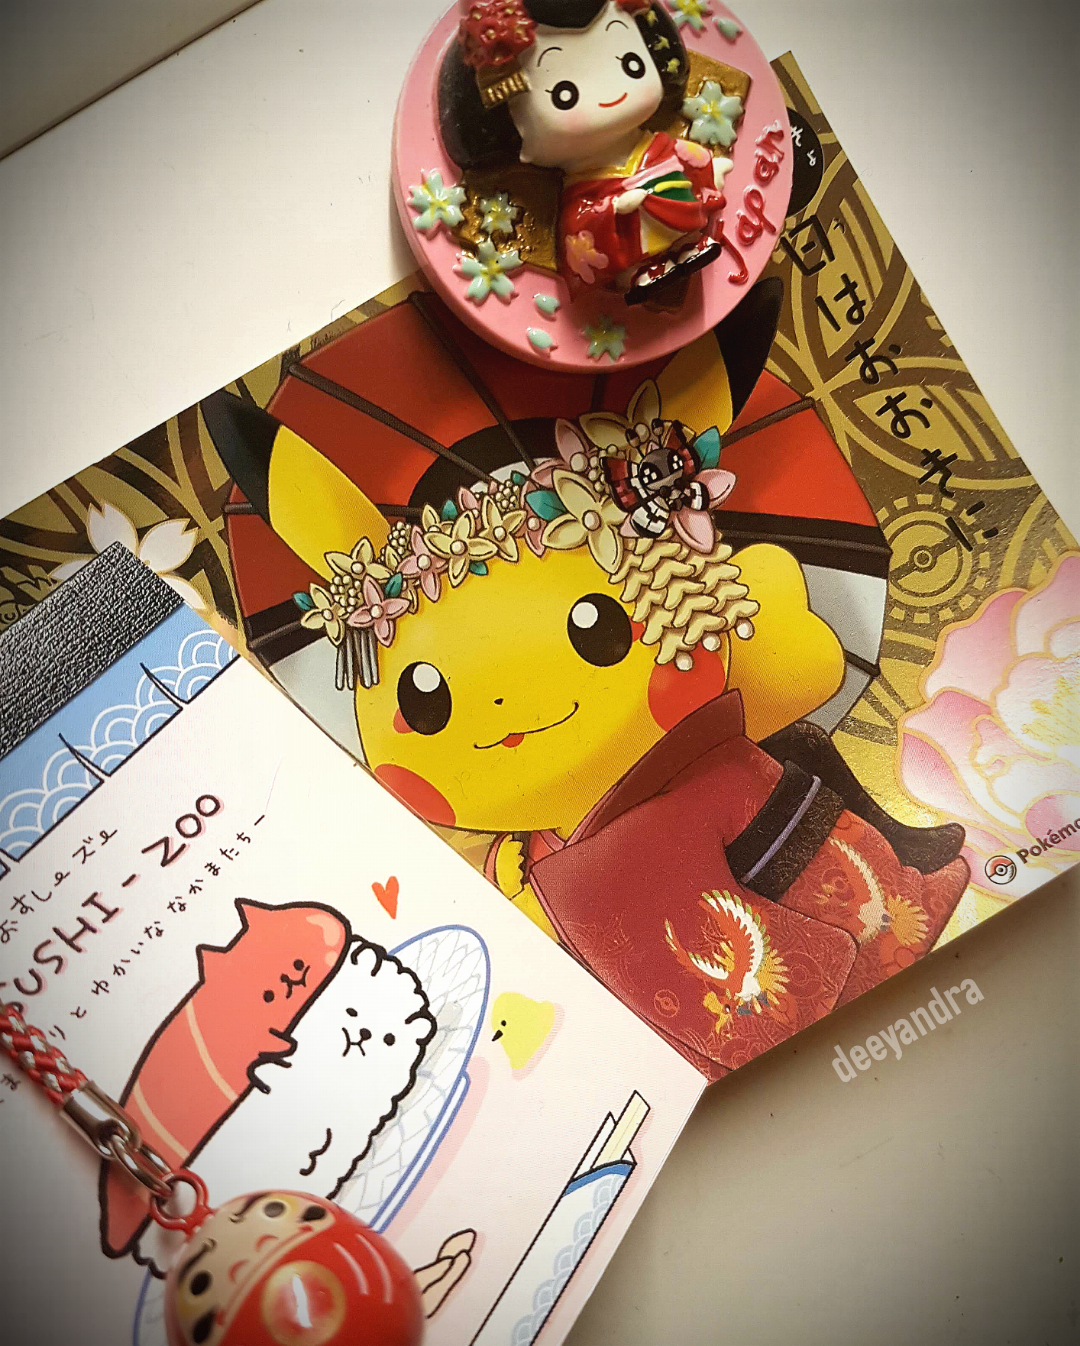 A postcard of Pikachu in traditional dress, a magnet from Kyoto, a mini noteboook with cuddle sushi, and a Daruma keychain for luck